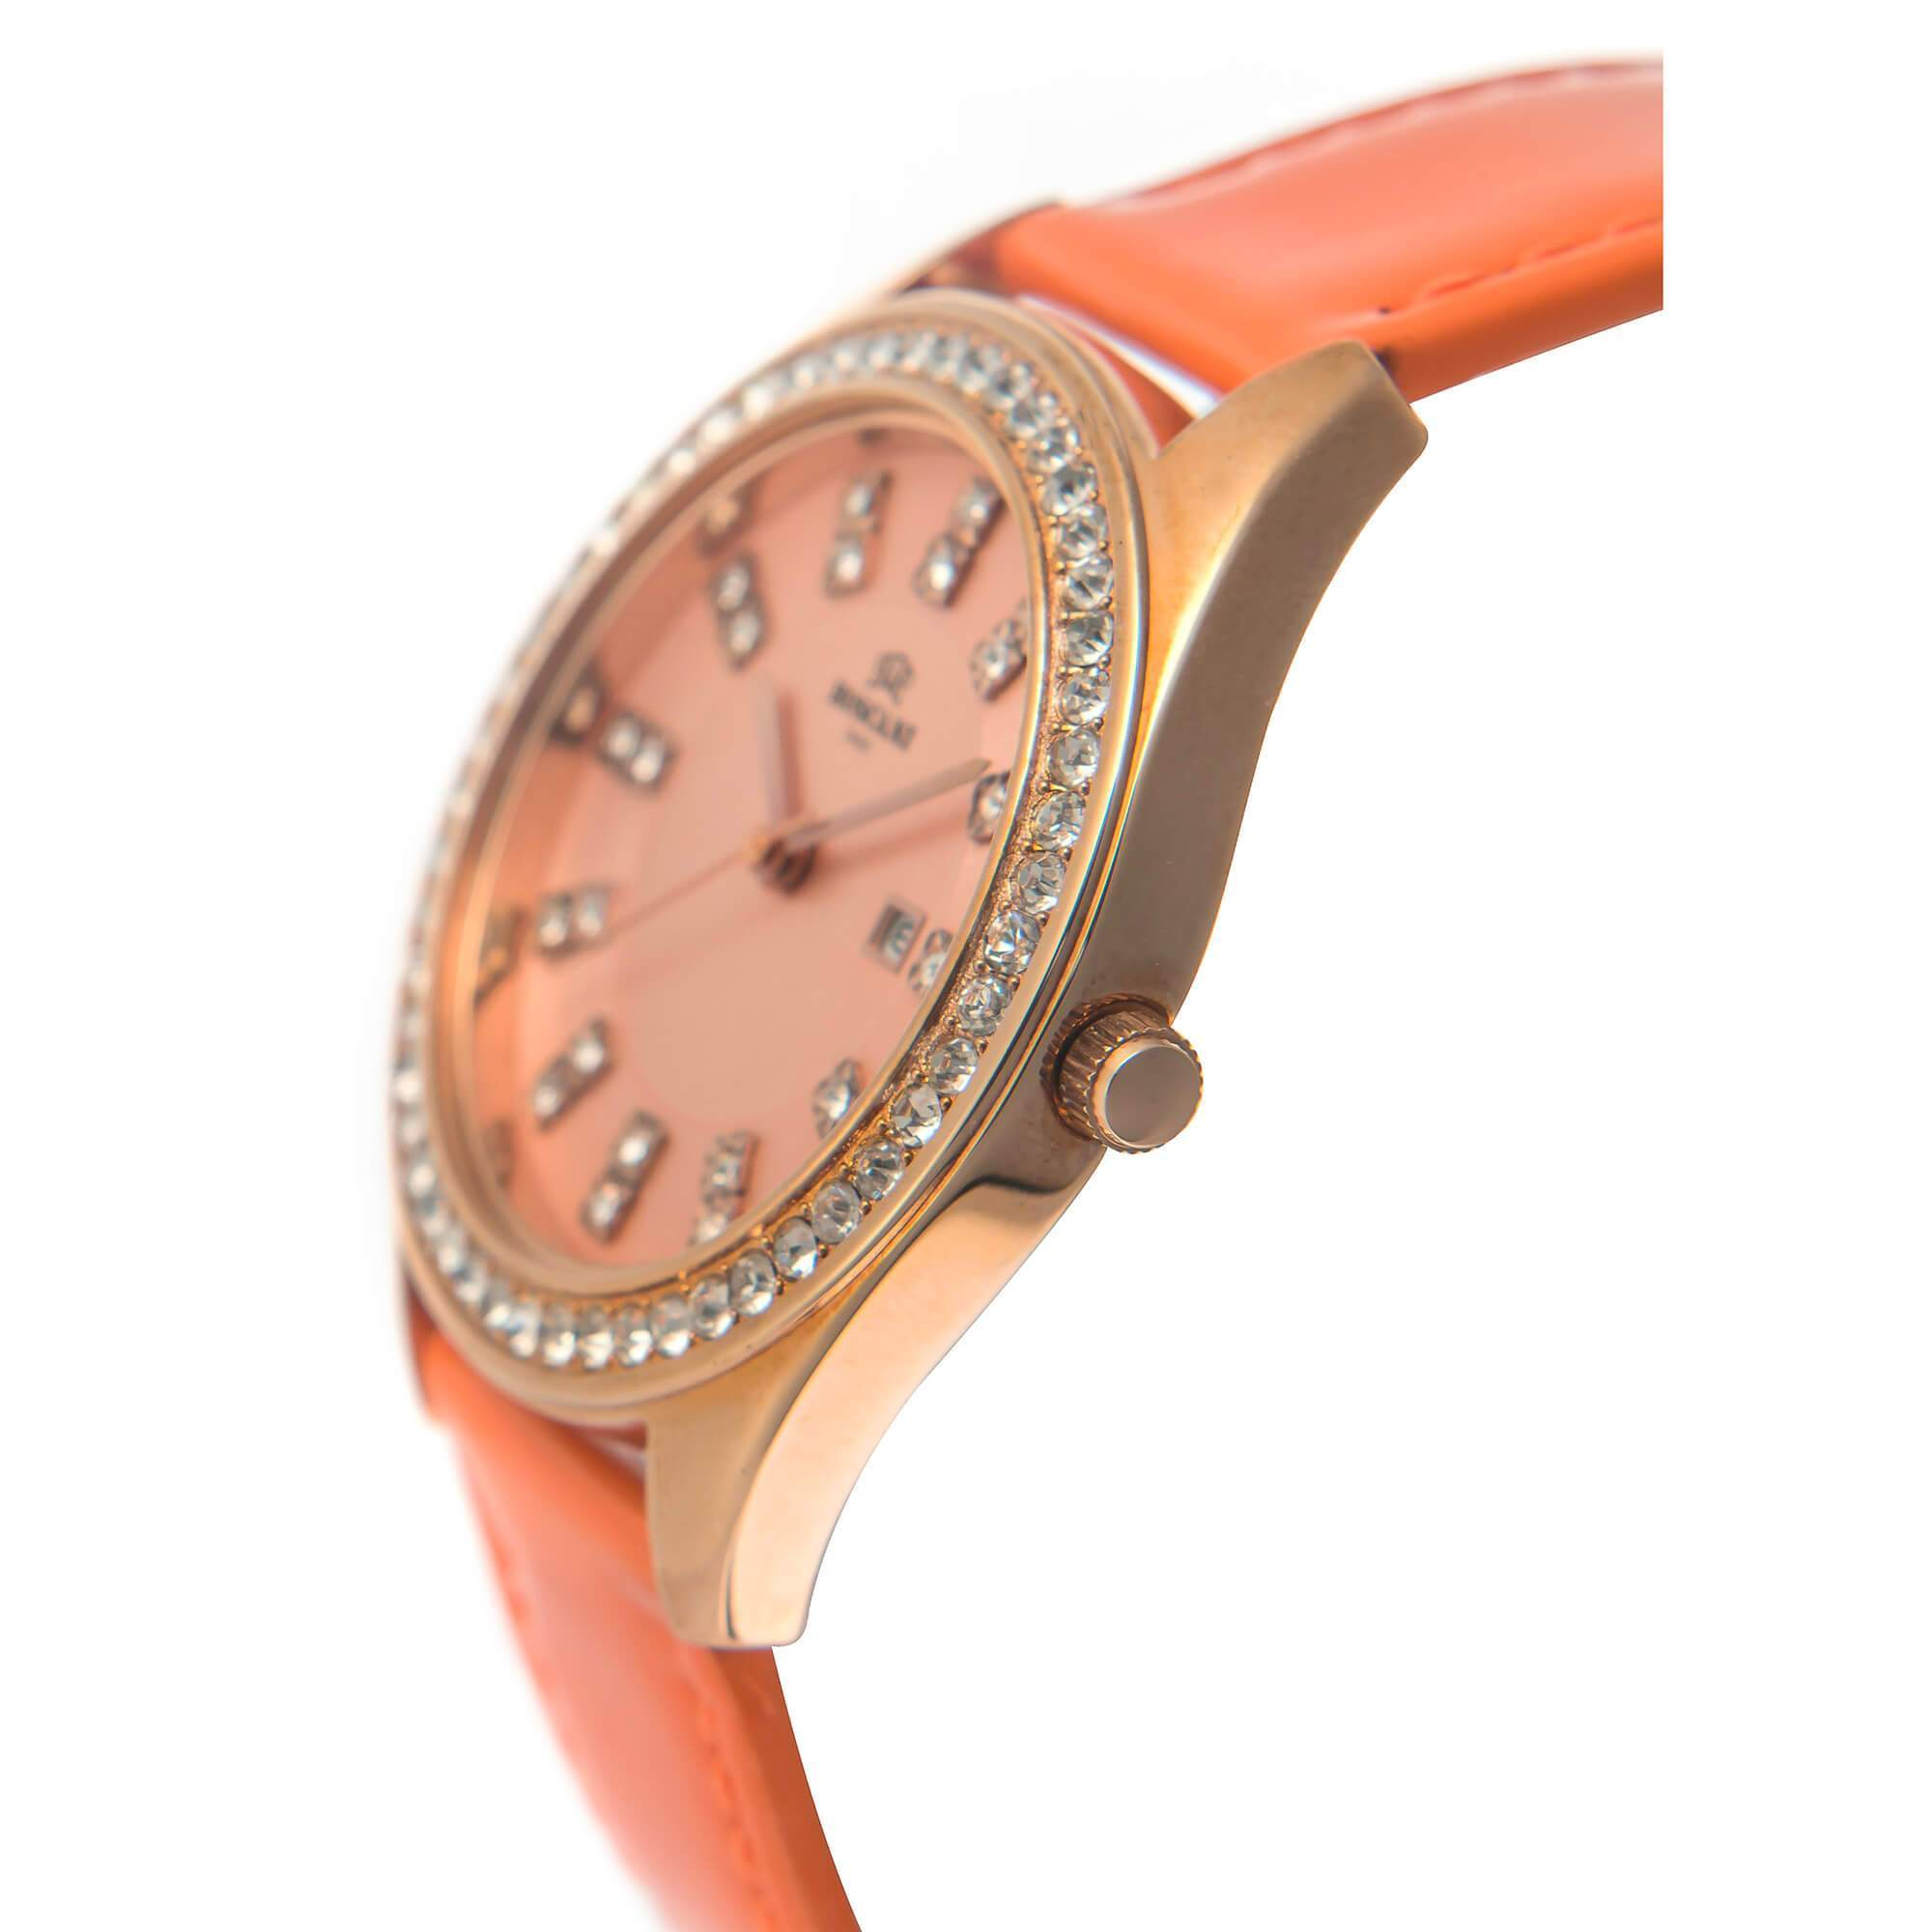 mk kors hand to woman michael watch s watches i hold your peach want pin